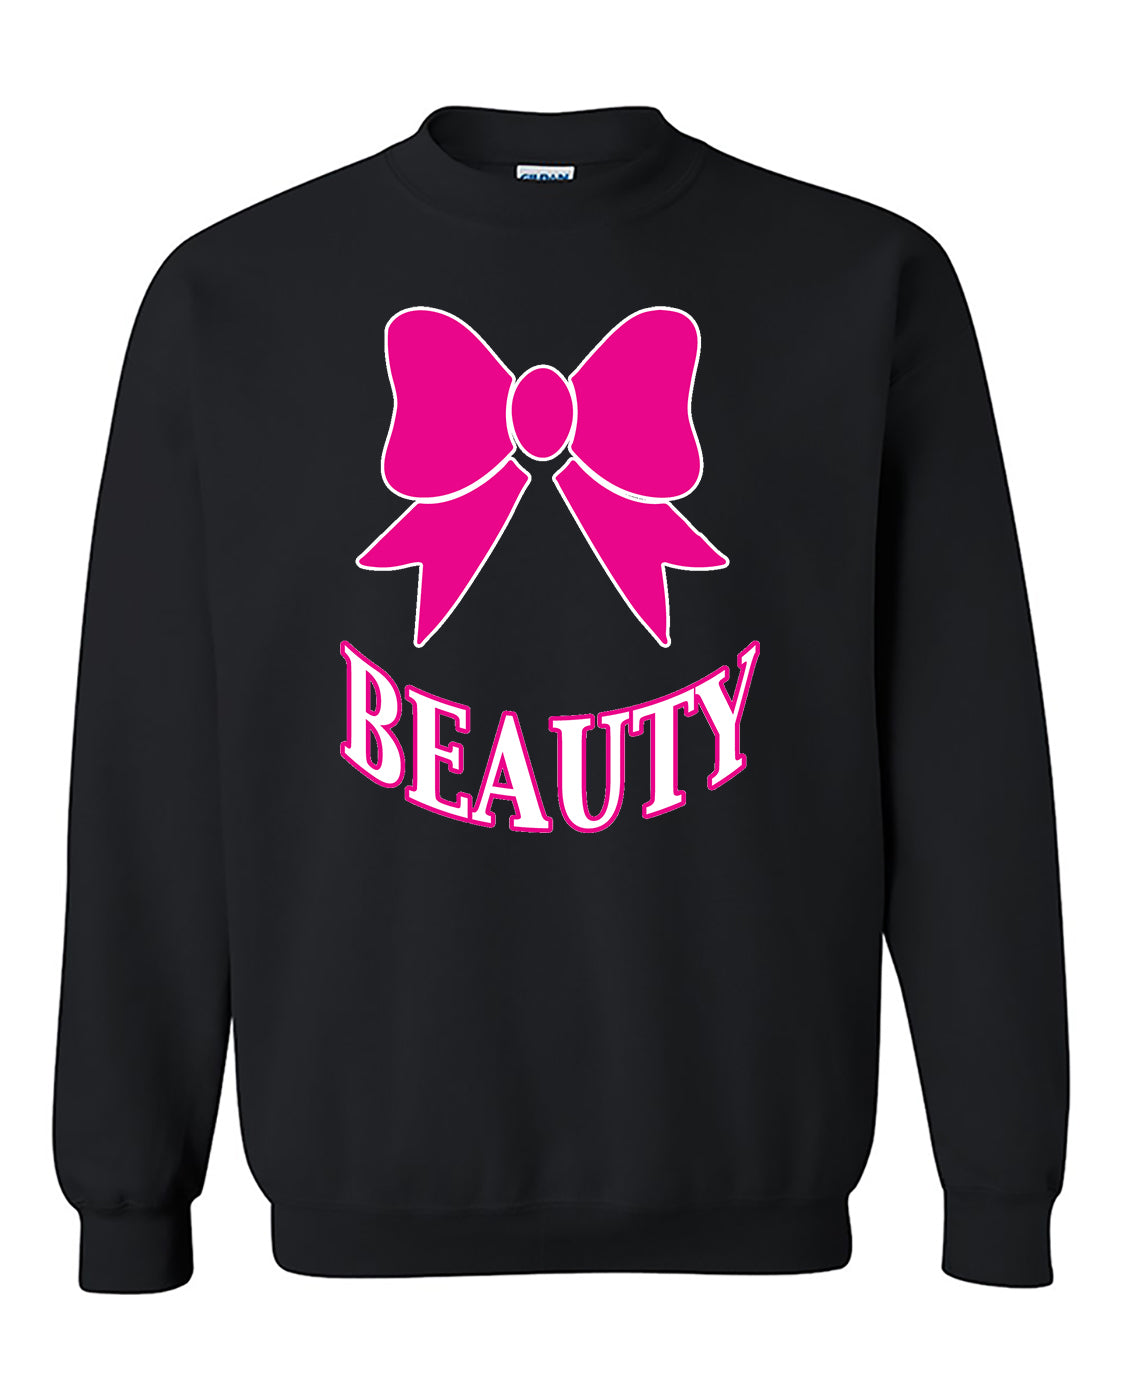 Beauty PINK Couples GYM Workouts Valentine's Day Gift Crewneck Sweater